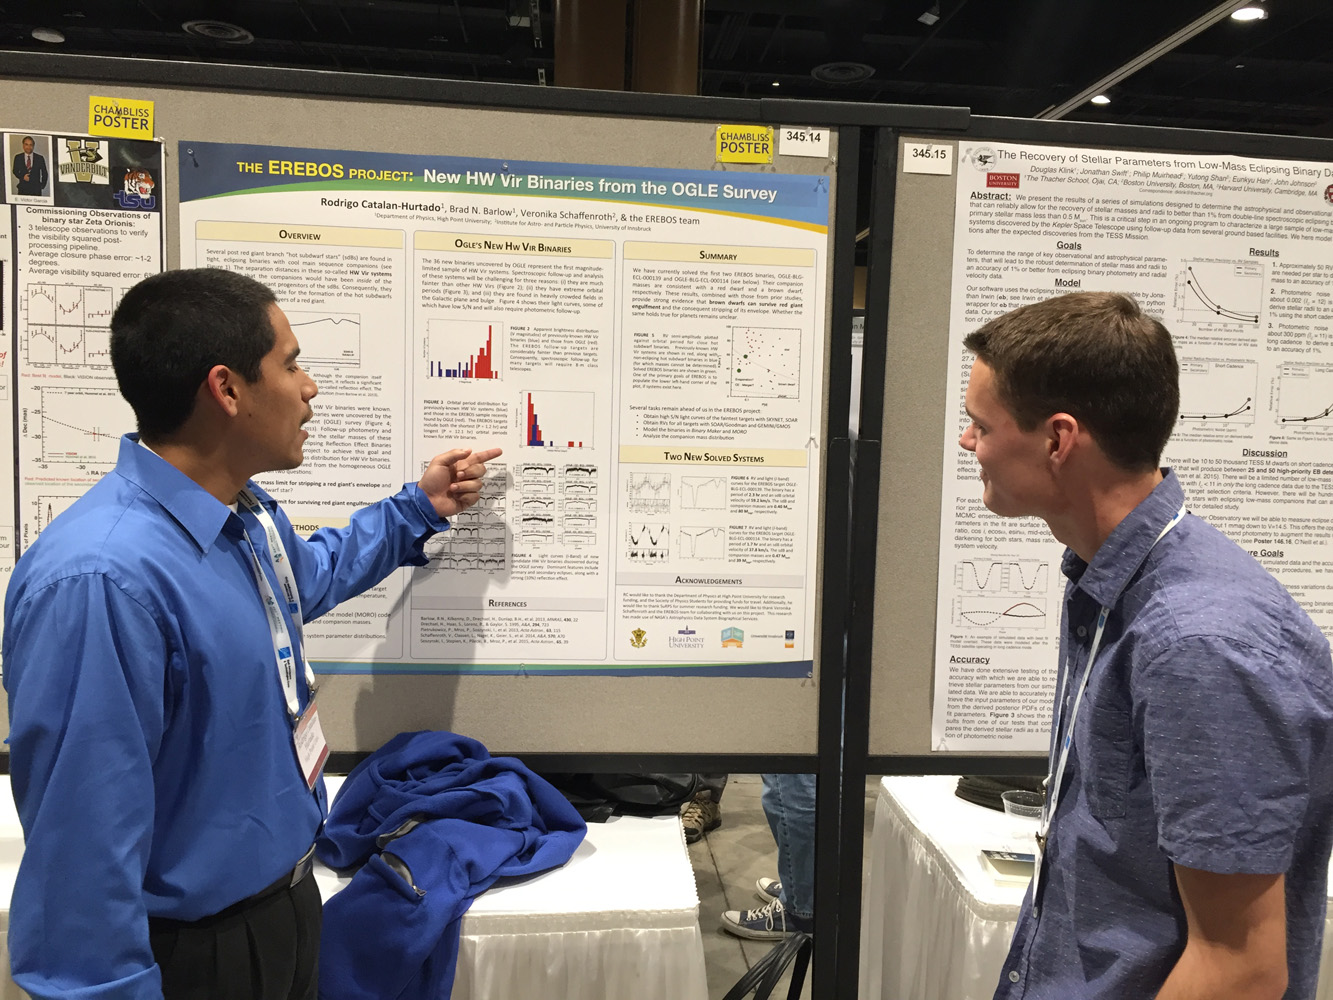 Rodrigo Catalan, left, talks about his research with a graduate student at the meeting.